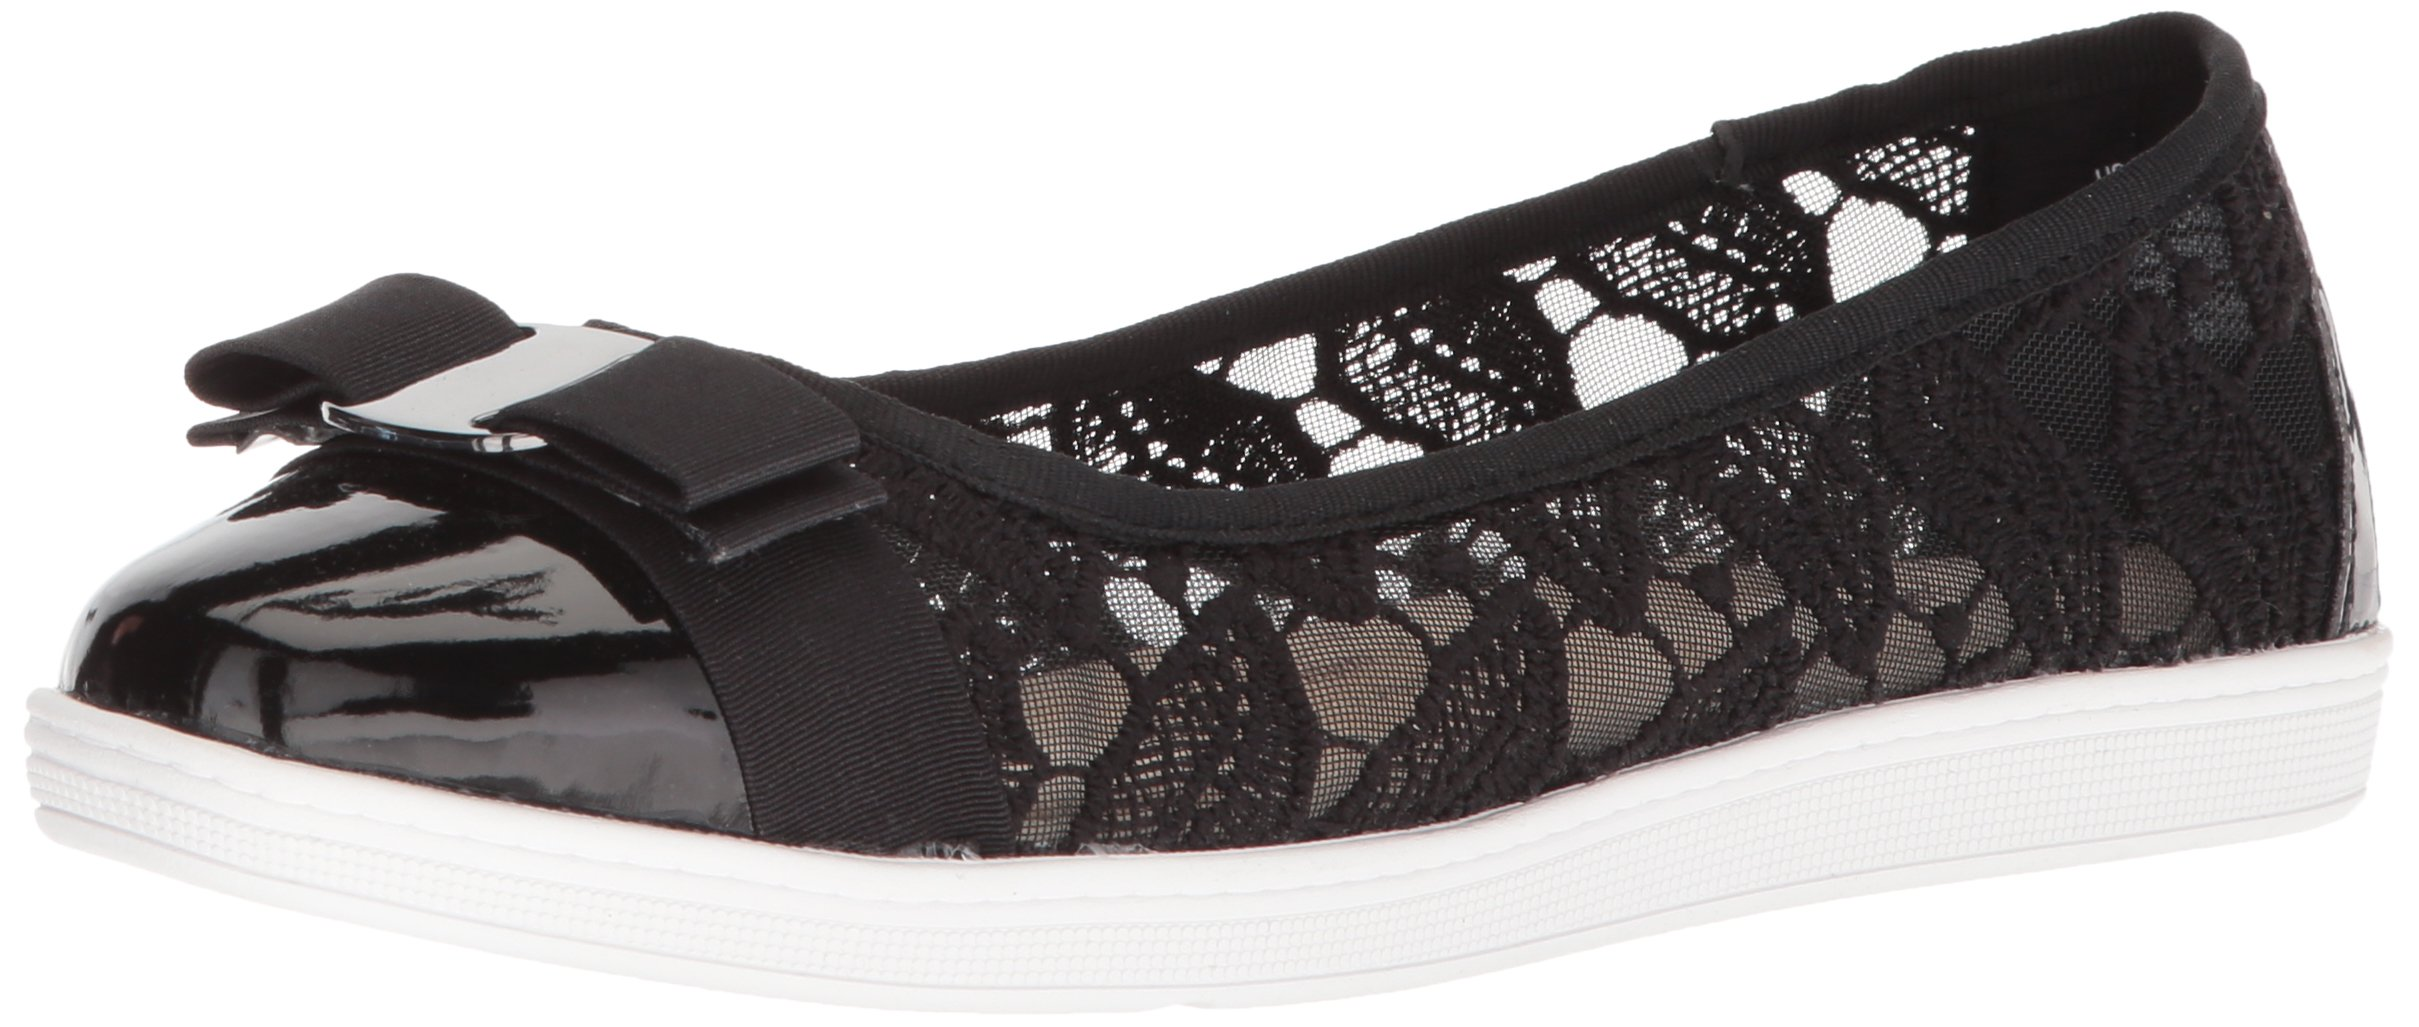 Soft Style by Hush Puppies Women's Fagan Loafer, Black Macrame, 12.0 W US